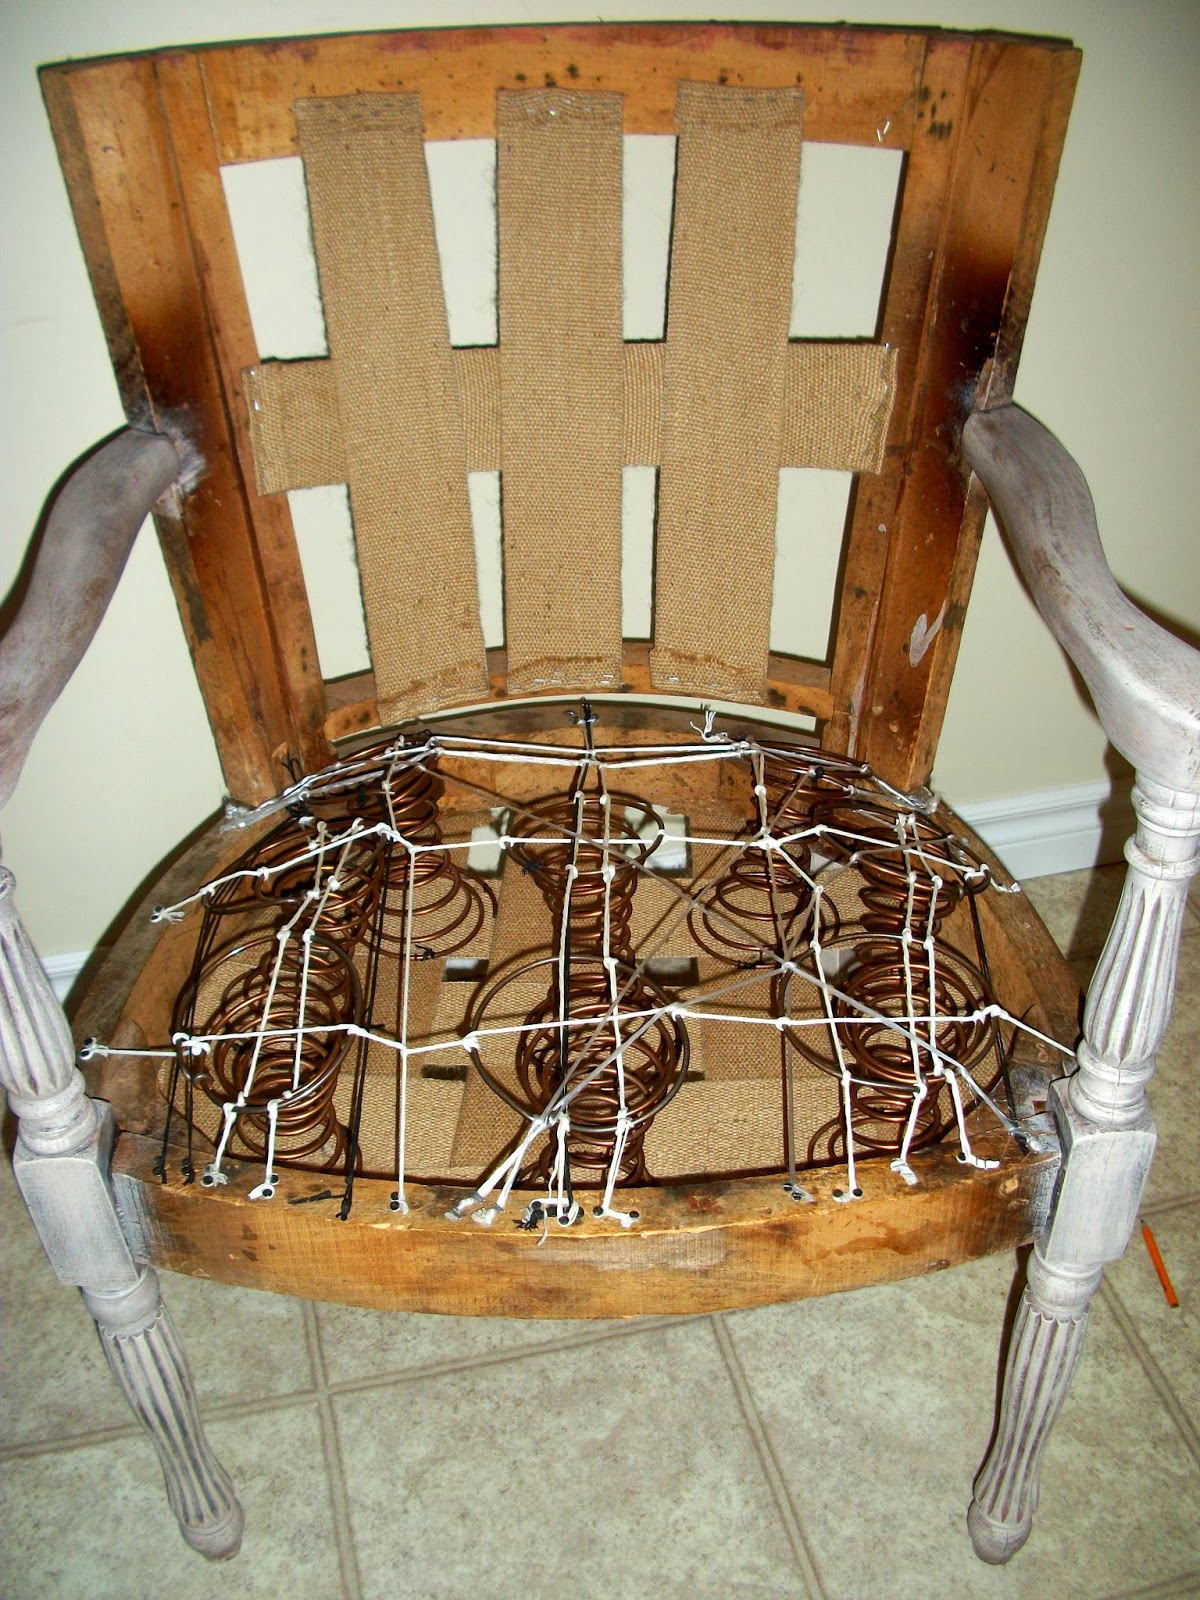 Springs For Chairs Pride Lift Chair Repair Fay Grayson Home First Time Coil Spring Tying And Padding